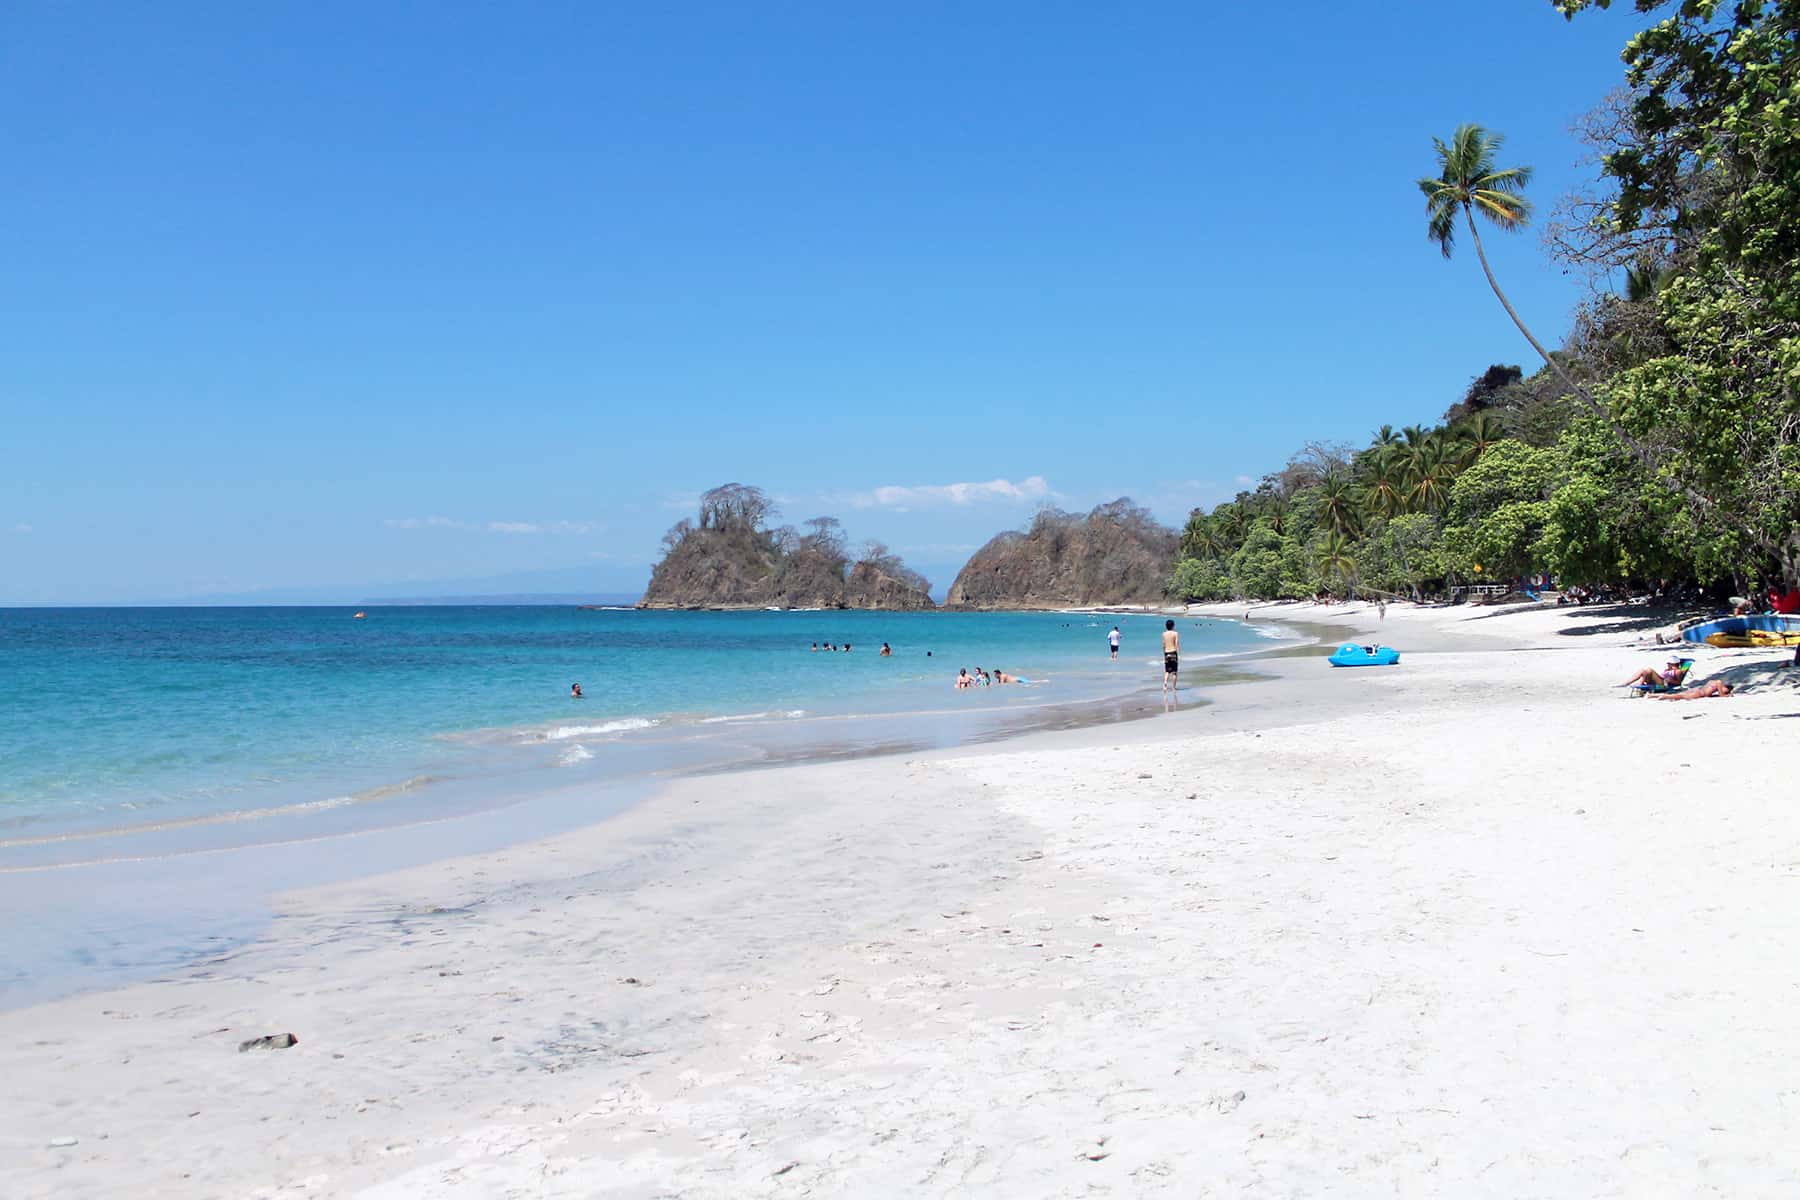 Playa Blanca In Costa Rica S Central Pacific Is One Of Three Beaches Awarded With The Maximum Five Stars This Year Under Ecological Blue Flag Program